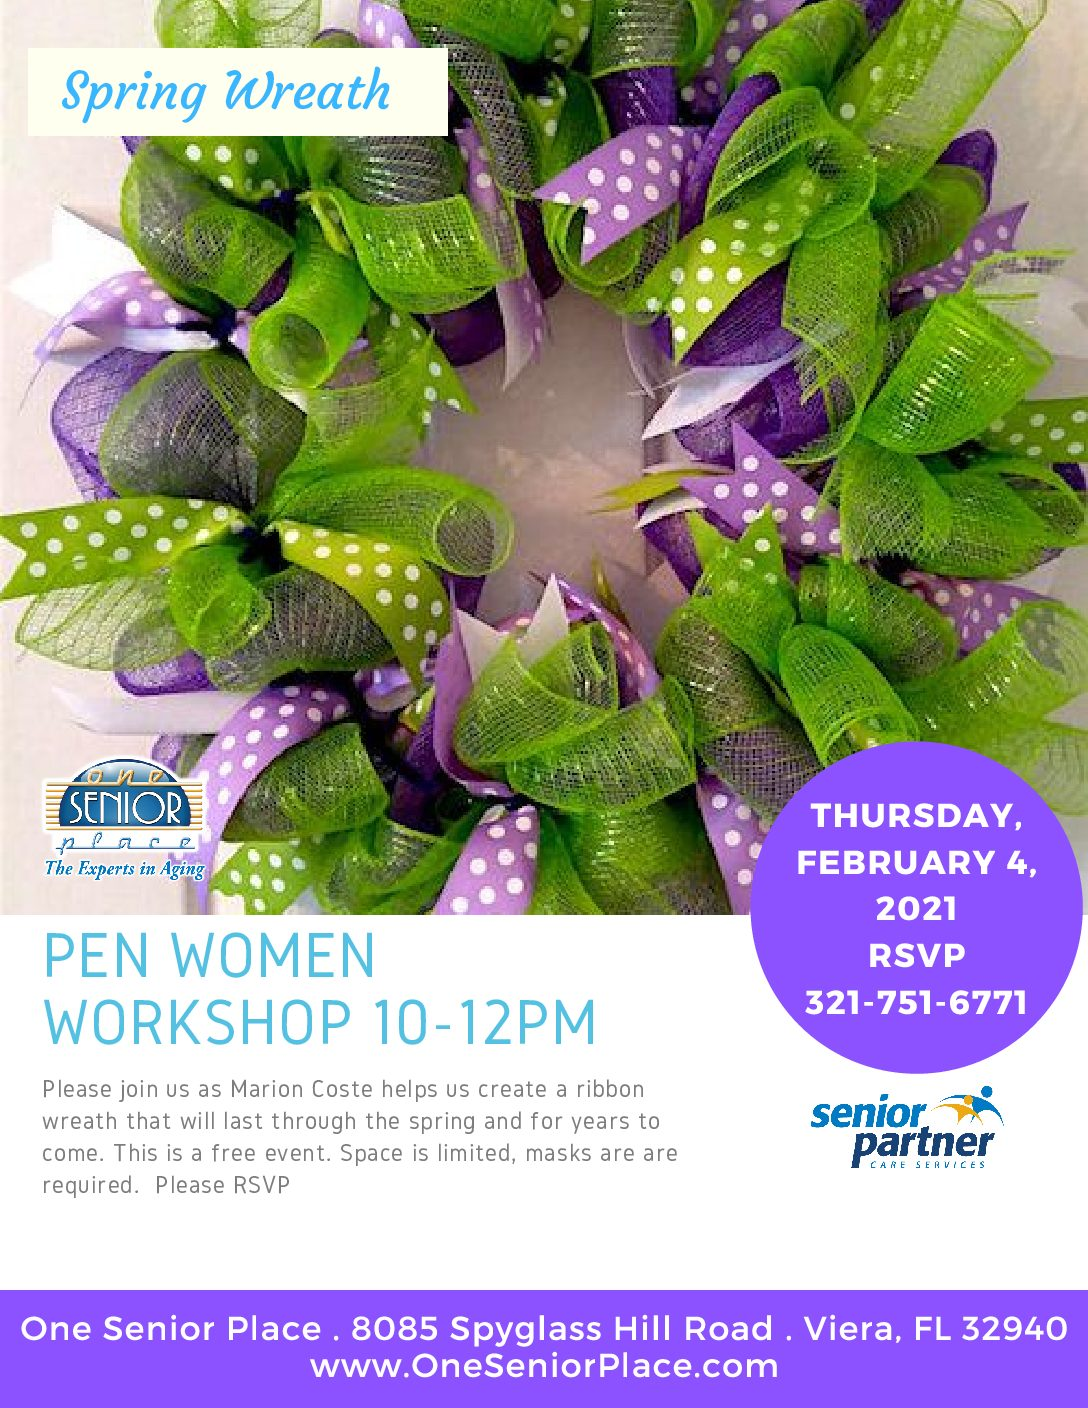 Wreath Making Event, One Senior Place and Cape Canaveral Women's Pen Group